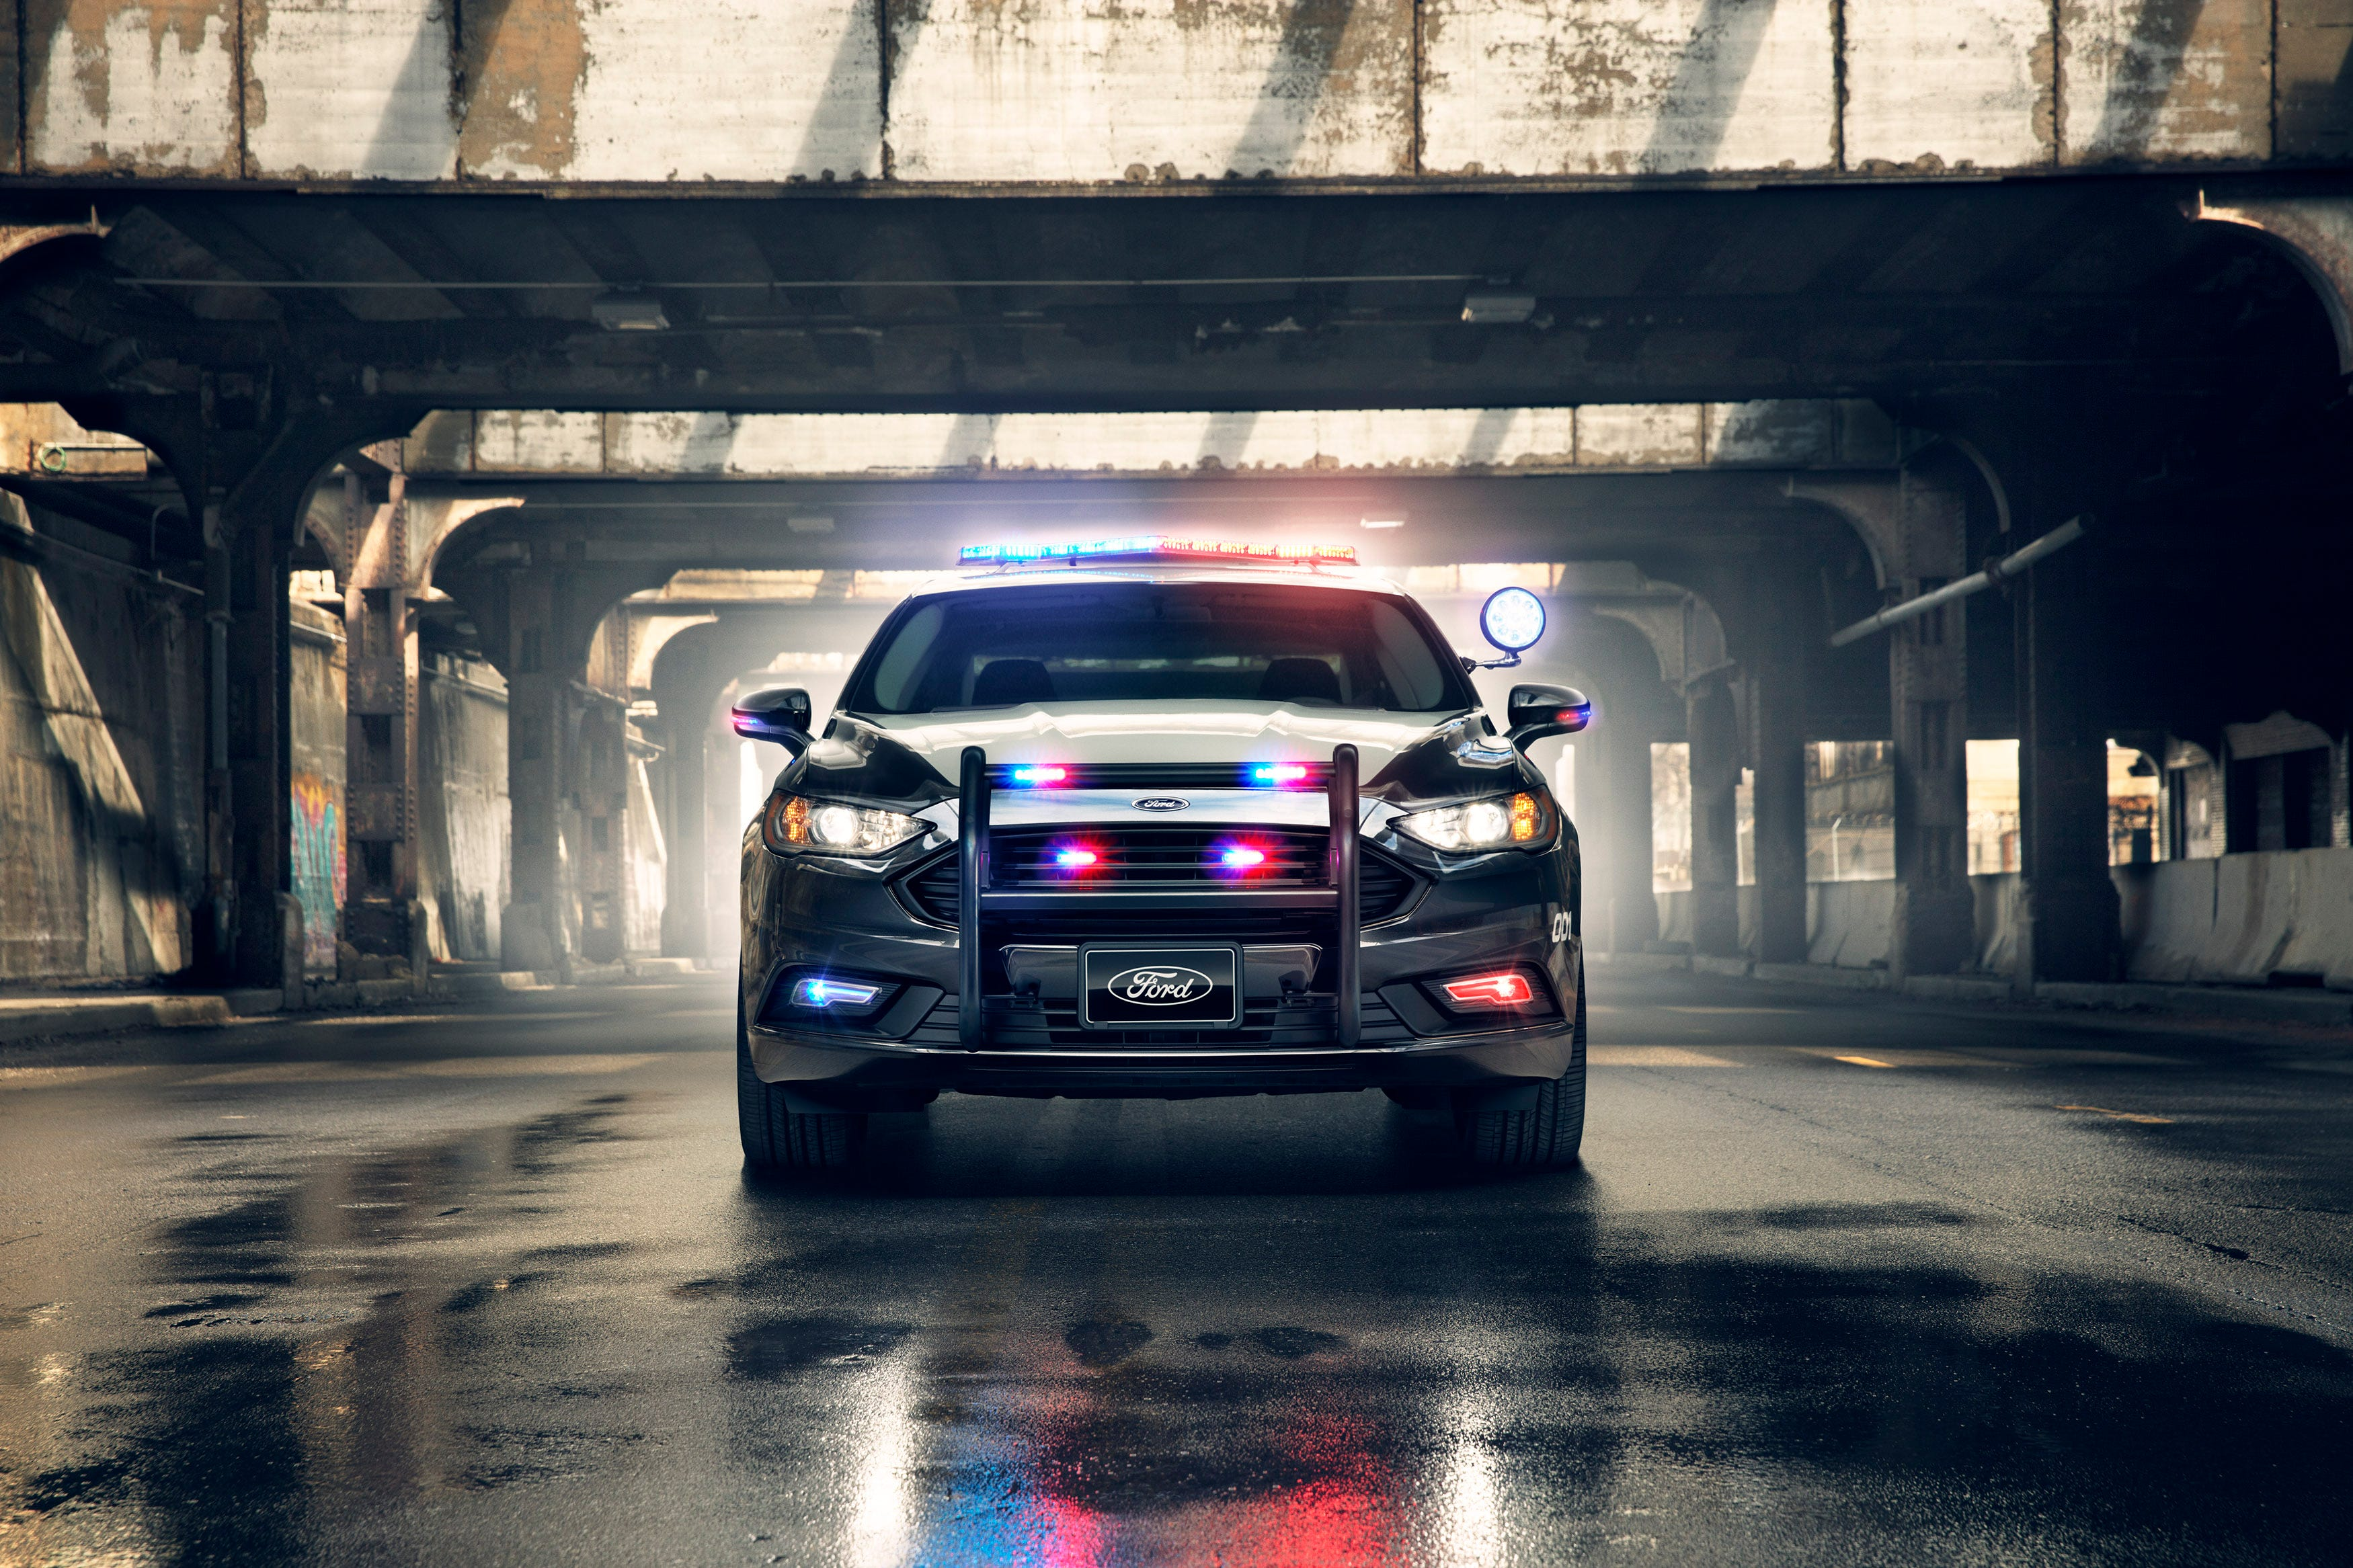 Ford unveils first u0027pursuit ratedu0027 hybrid police car for high-speed chases & Ford unveils first u0027pursuit ratedu0027 hybrid police car for high ... markmcfarlin.com